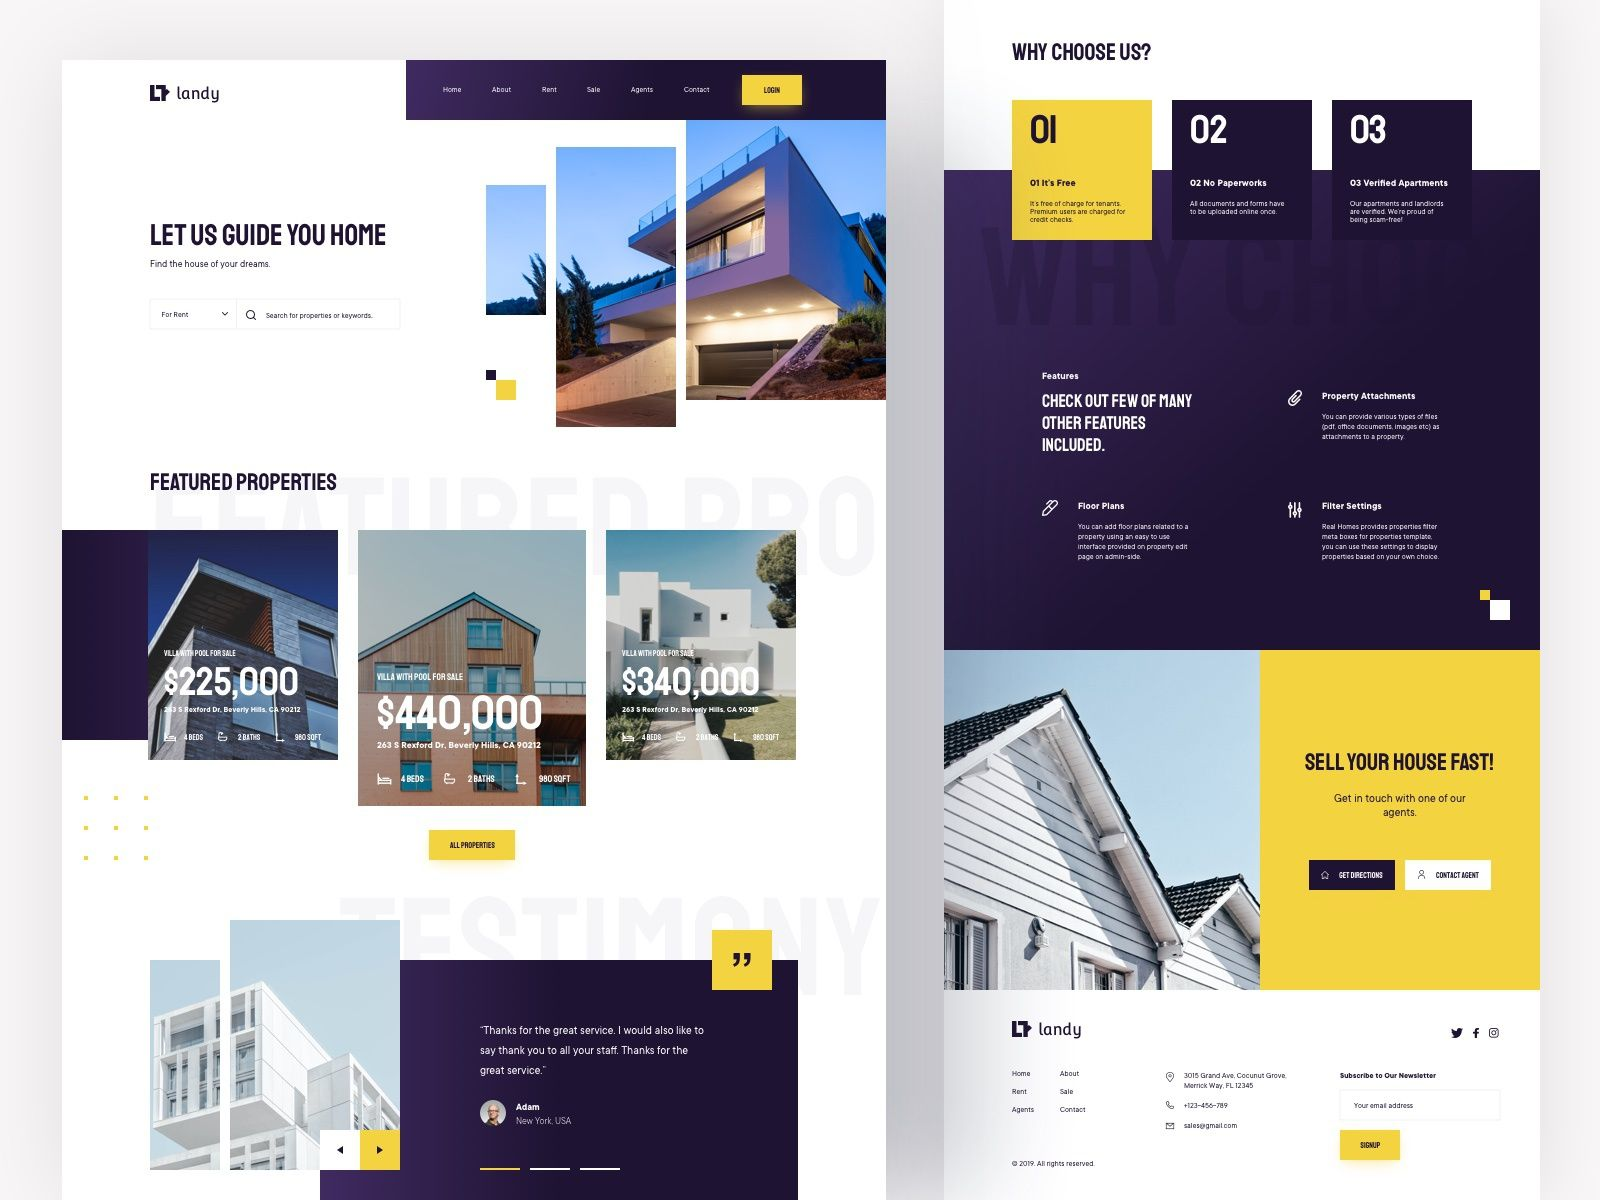 Real Estate Landing Page Design To Promote Your Real Estate Business Http Buff Ly 1r2xfot Real Estate Landing Pages Real Estate Website Design Real Estate